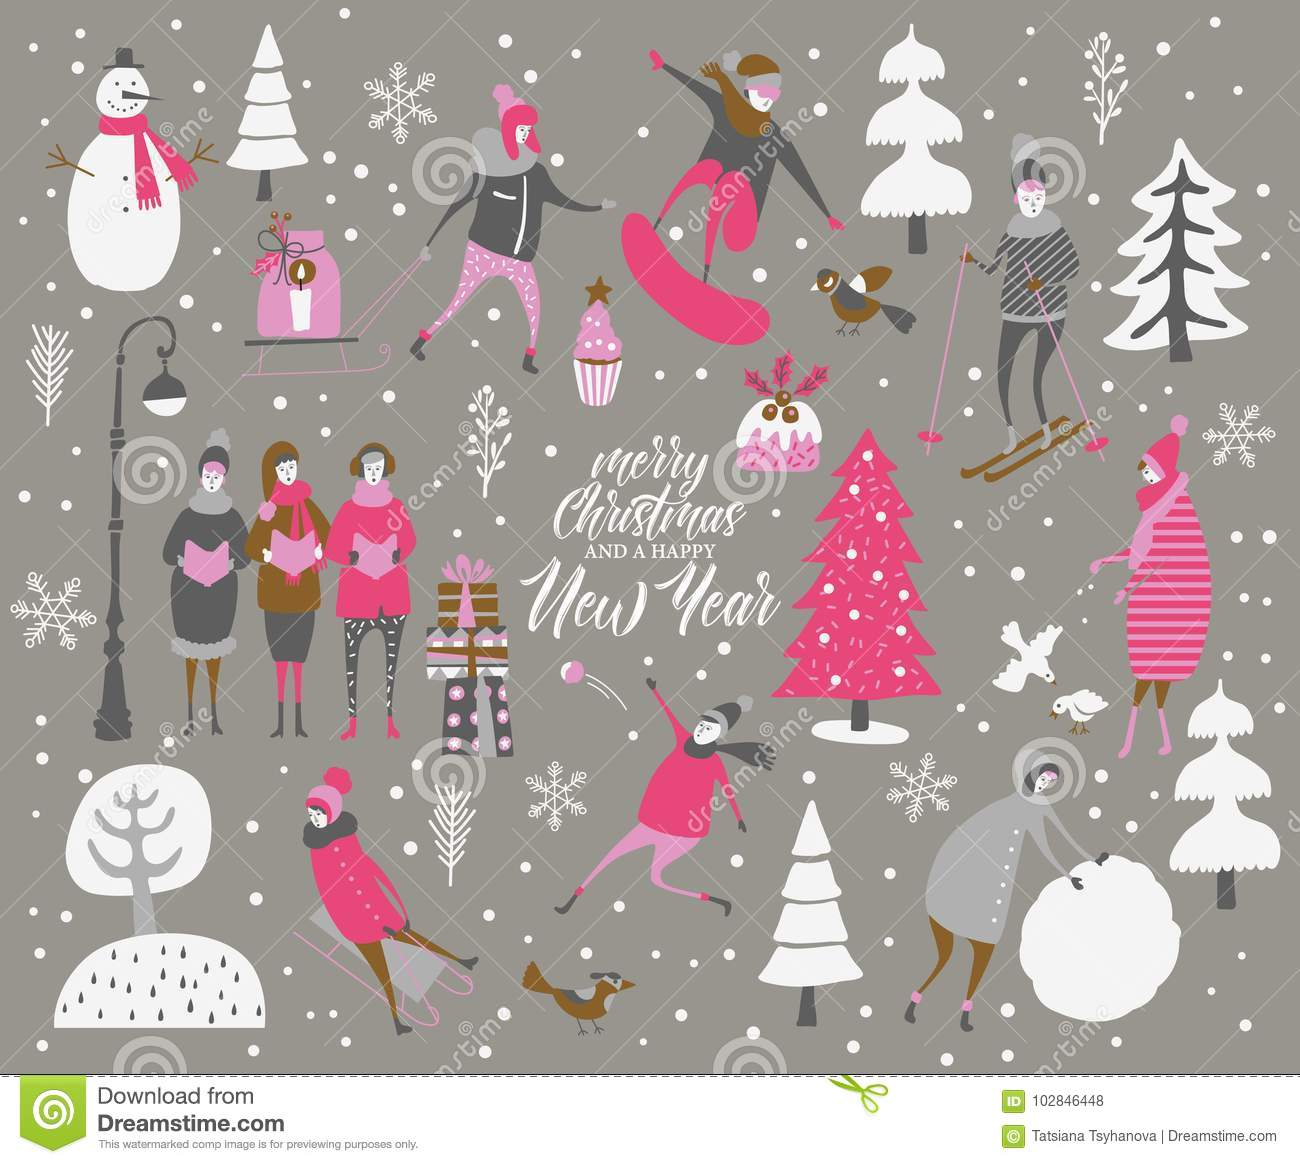 merry christmas and happy new year vector greeting card with winter games and people celebration - Merry Christmas Games